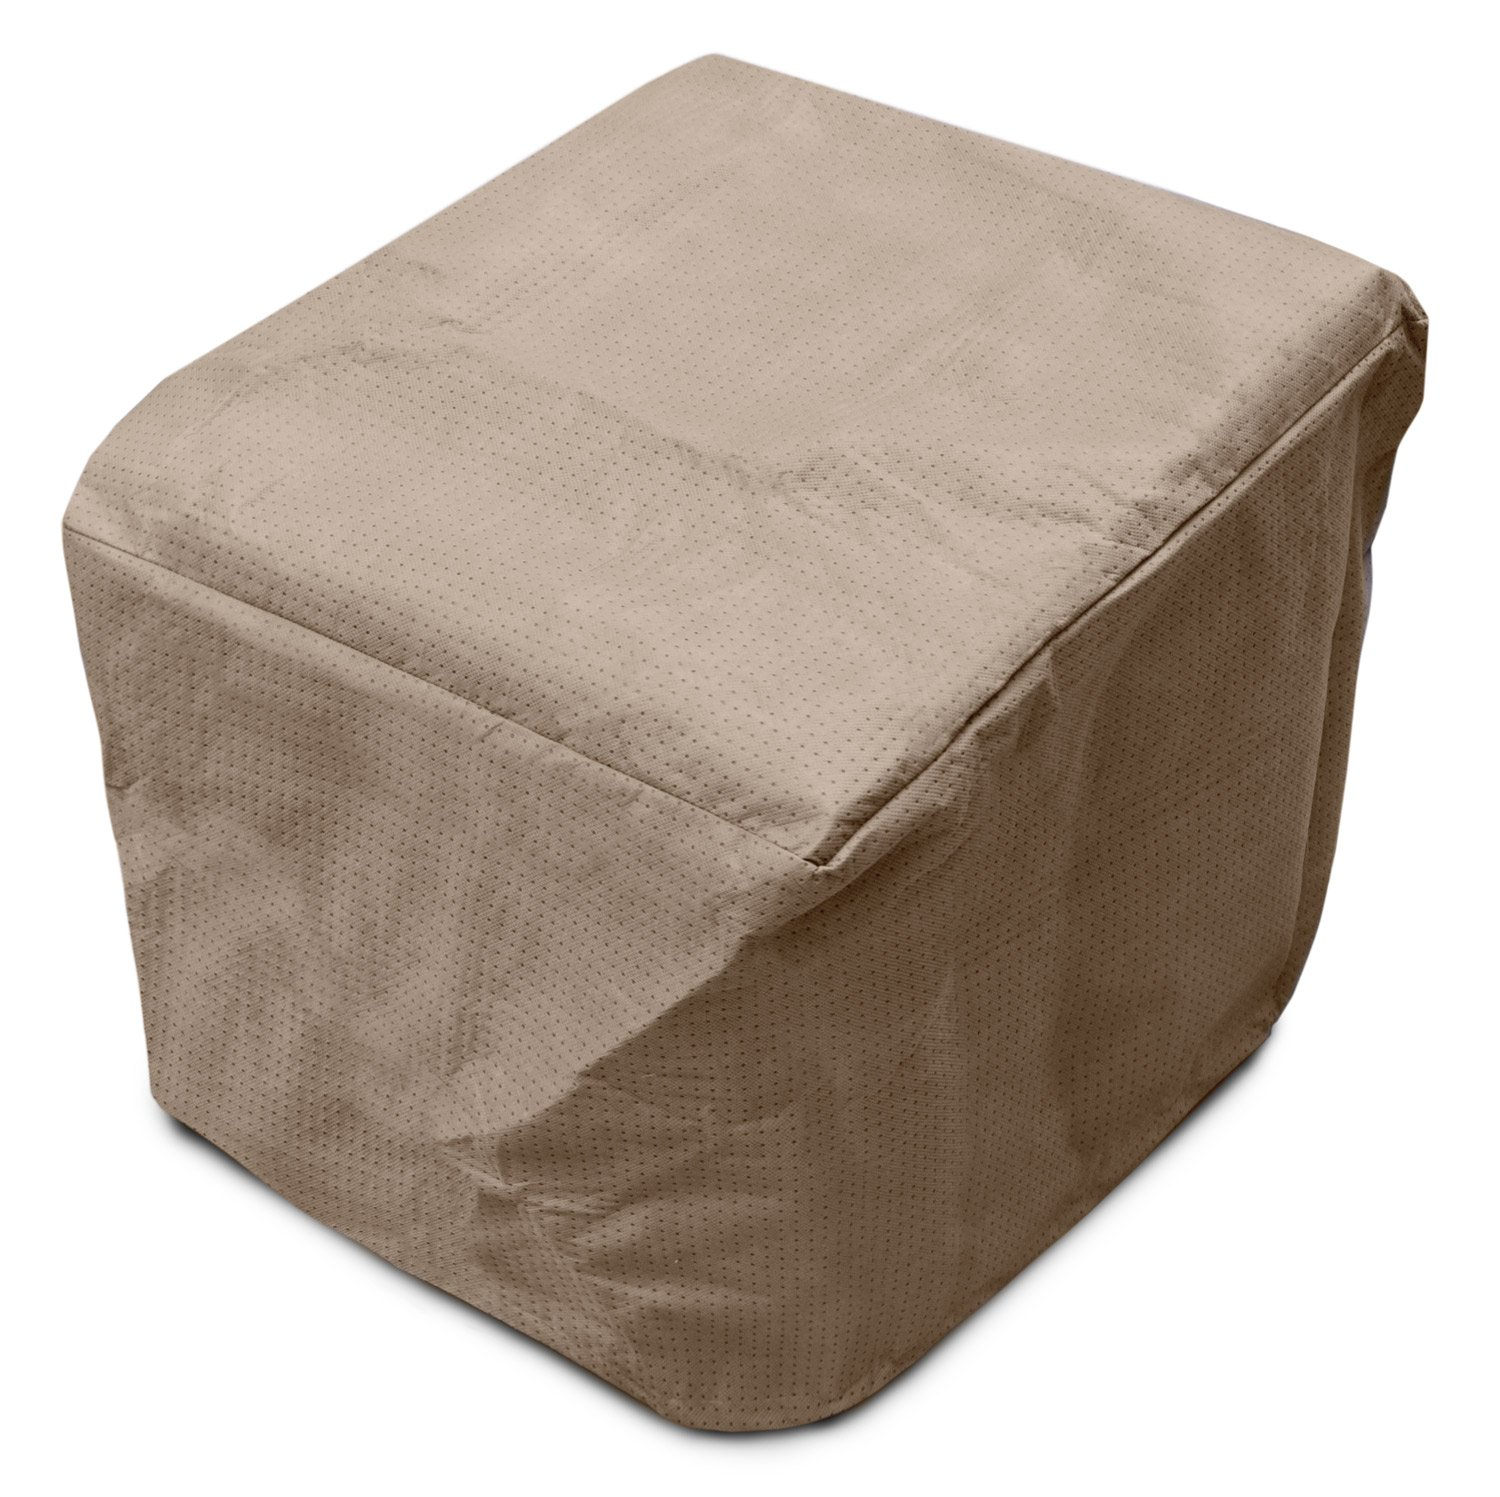 KoverRoos III 34263 24-Inch Square Table Cover, 24 by 24 by 15-Inch, Taupe